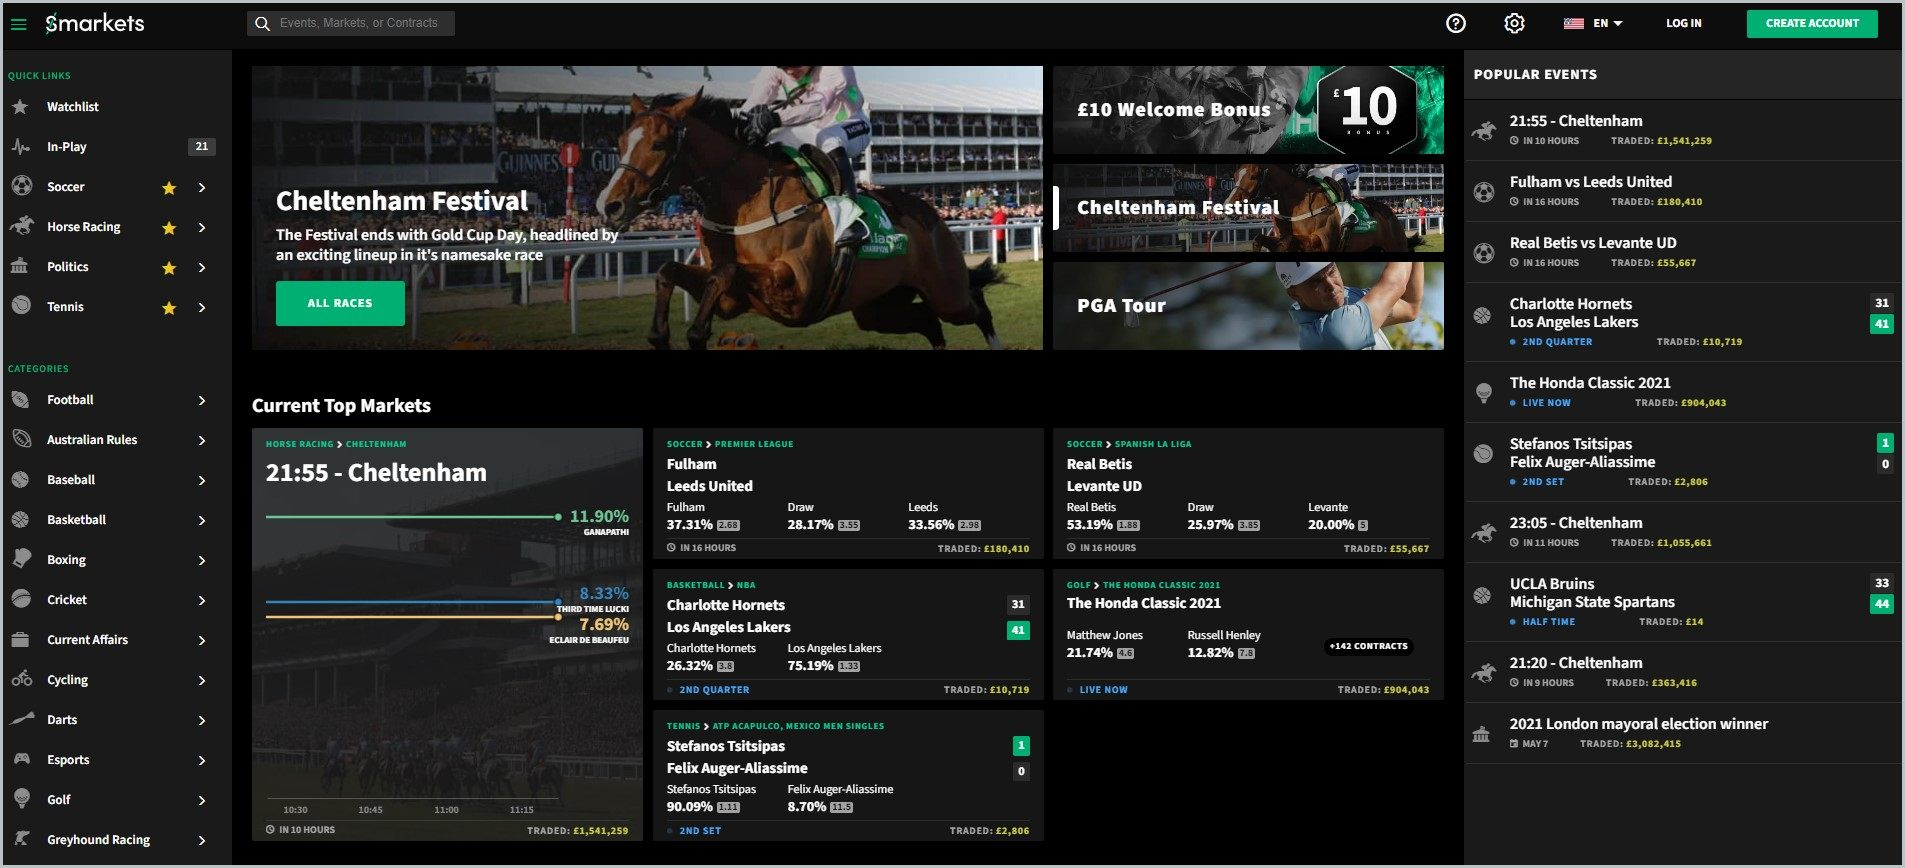 screenshot of Smarkets homepage with black header bearing the website's name, it showcases a dominantly black page with the navigation menu at the left-hand side of the page